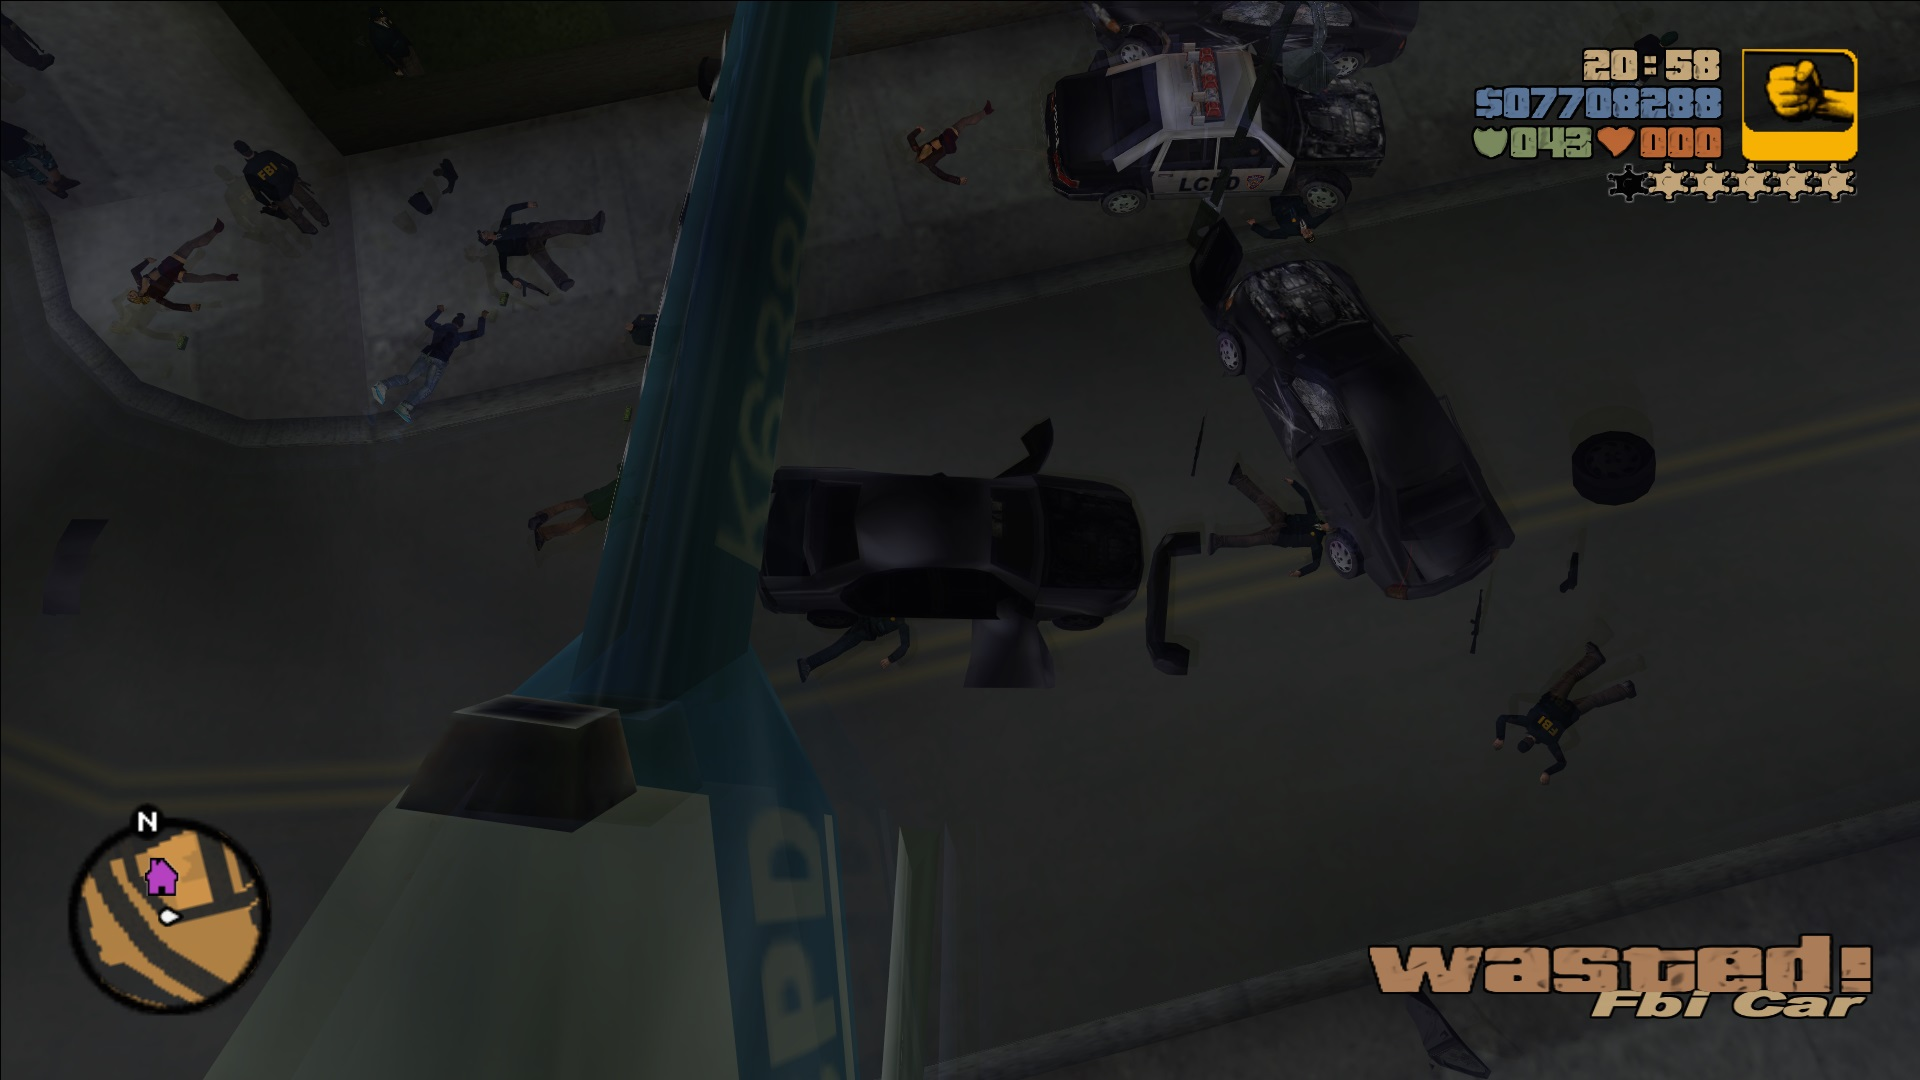 Wasted - GTA Wiki, the Grand Theft Auto Wiki - GTA IV, San Andreas ...